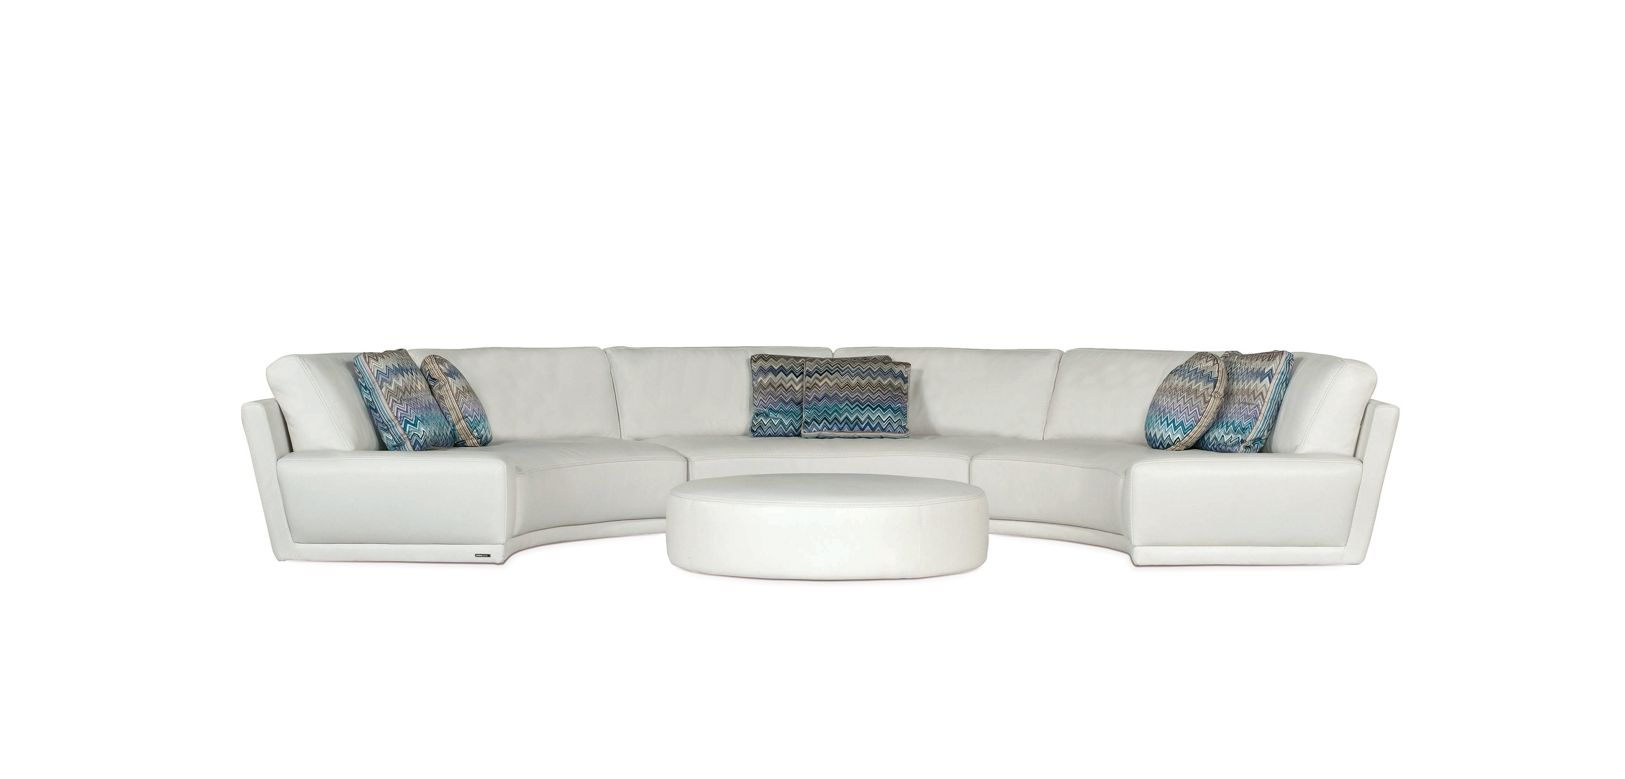 Canap composable arrondi solstice roche bobois for Canape d angle arrondi